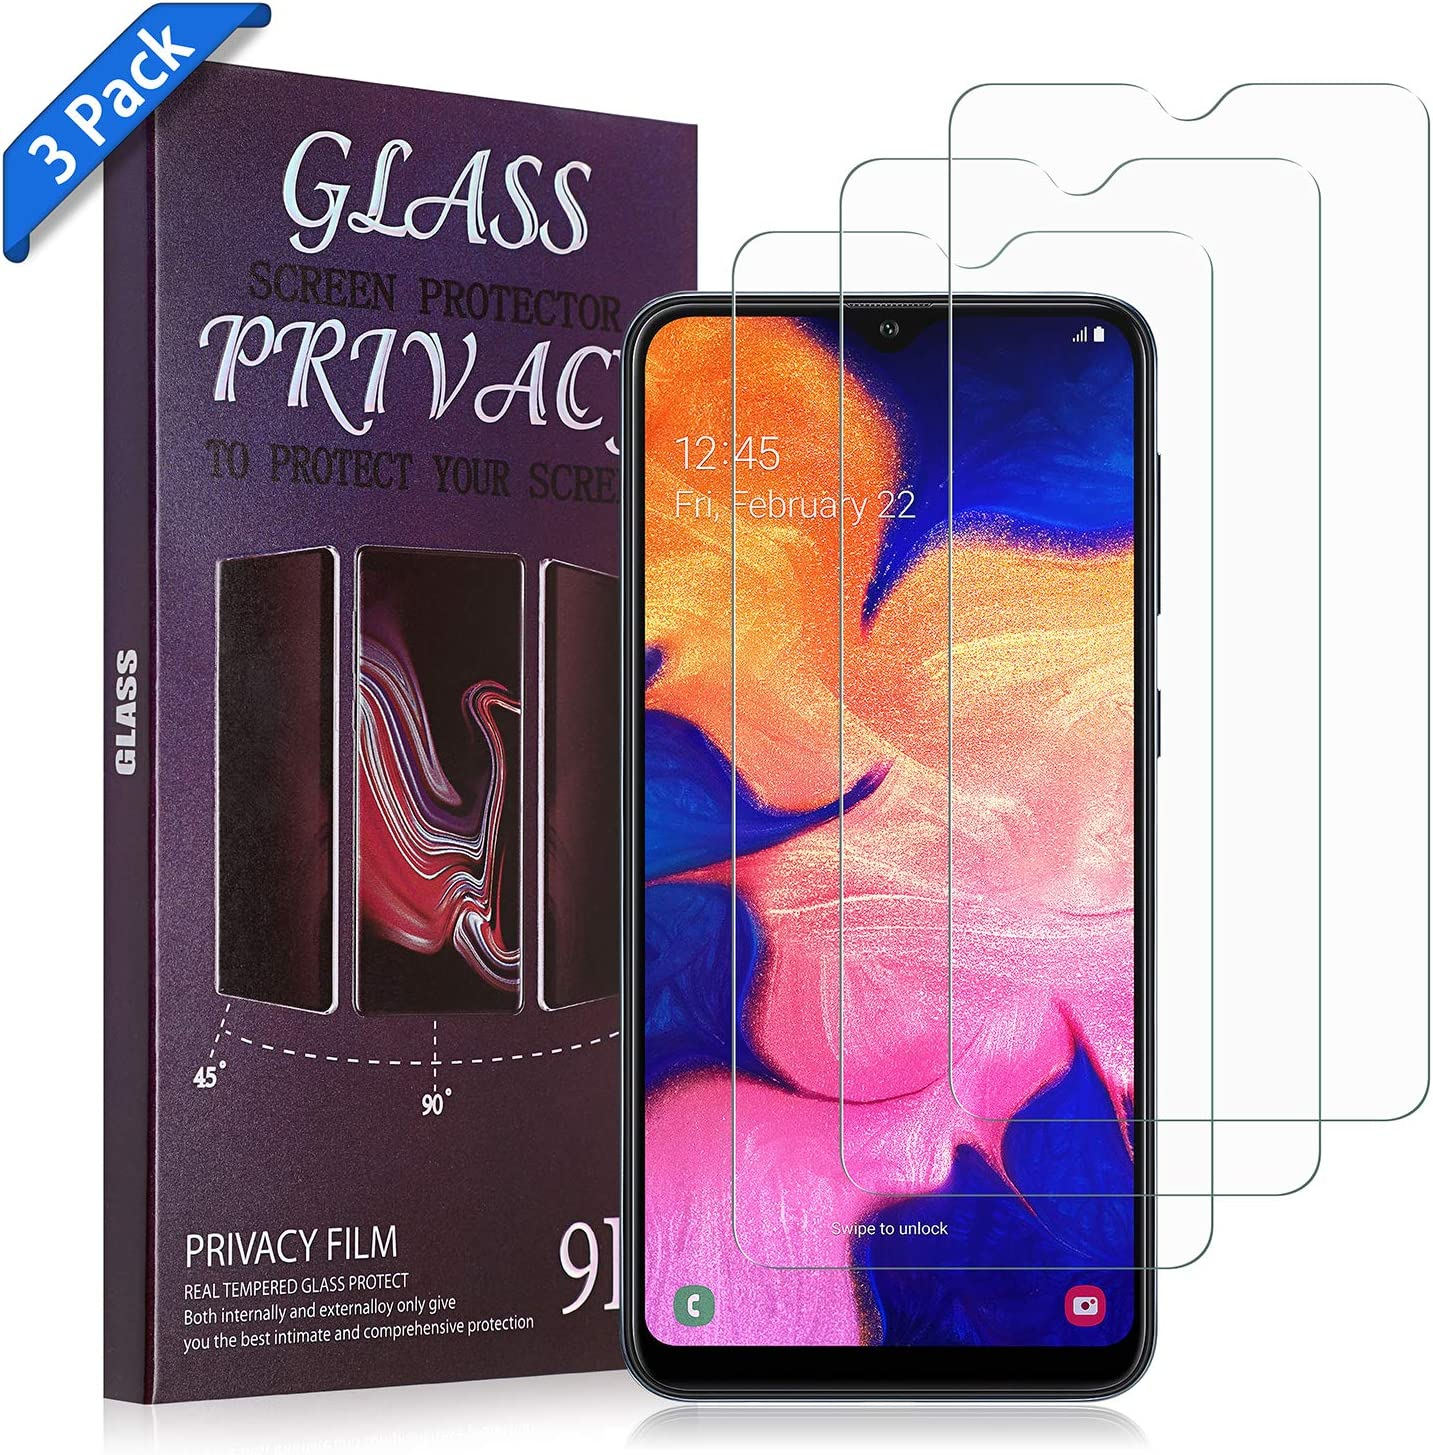 No-Bubble Scratch-Resistant Anti-Fingerprint Aclouddate Screen Protector Tempered Glass, Glass Screen Protector